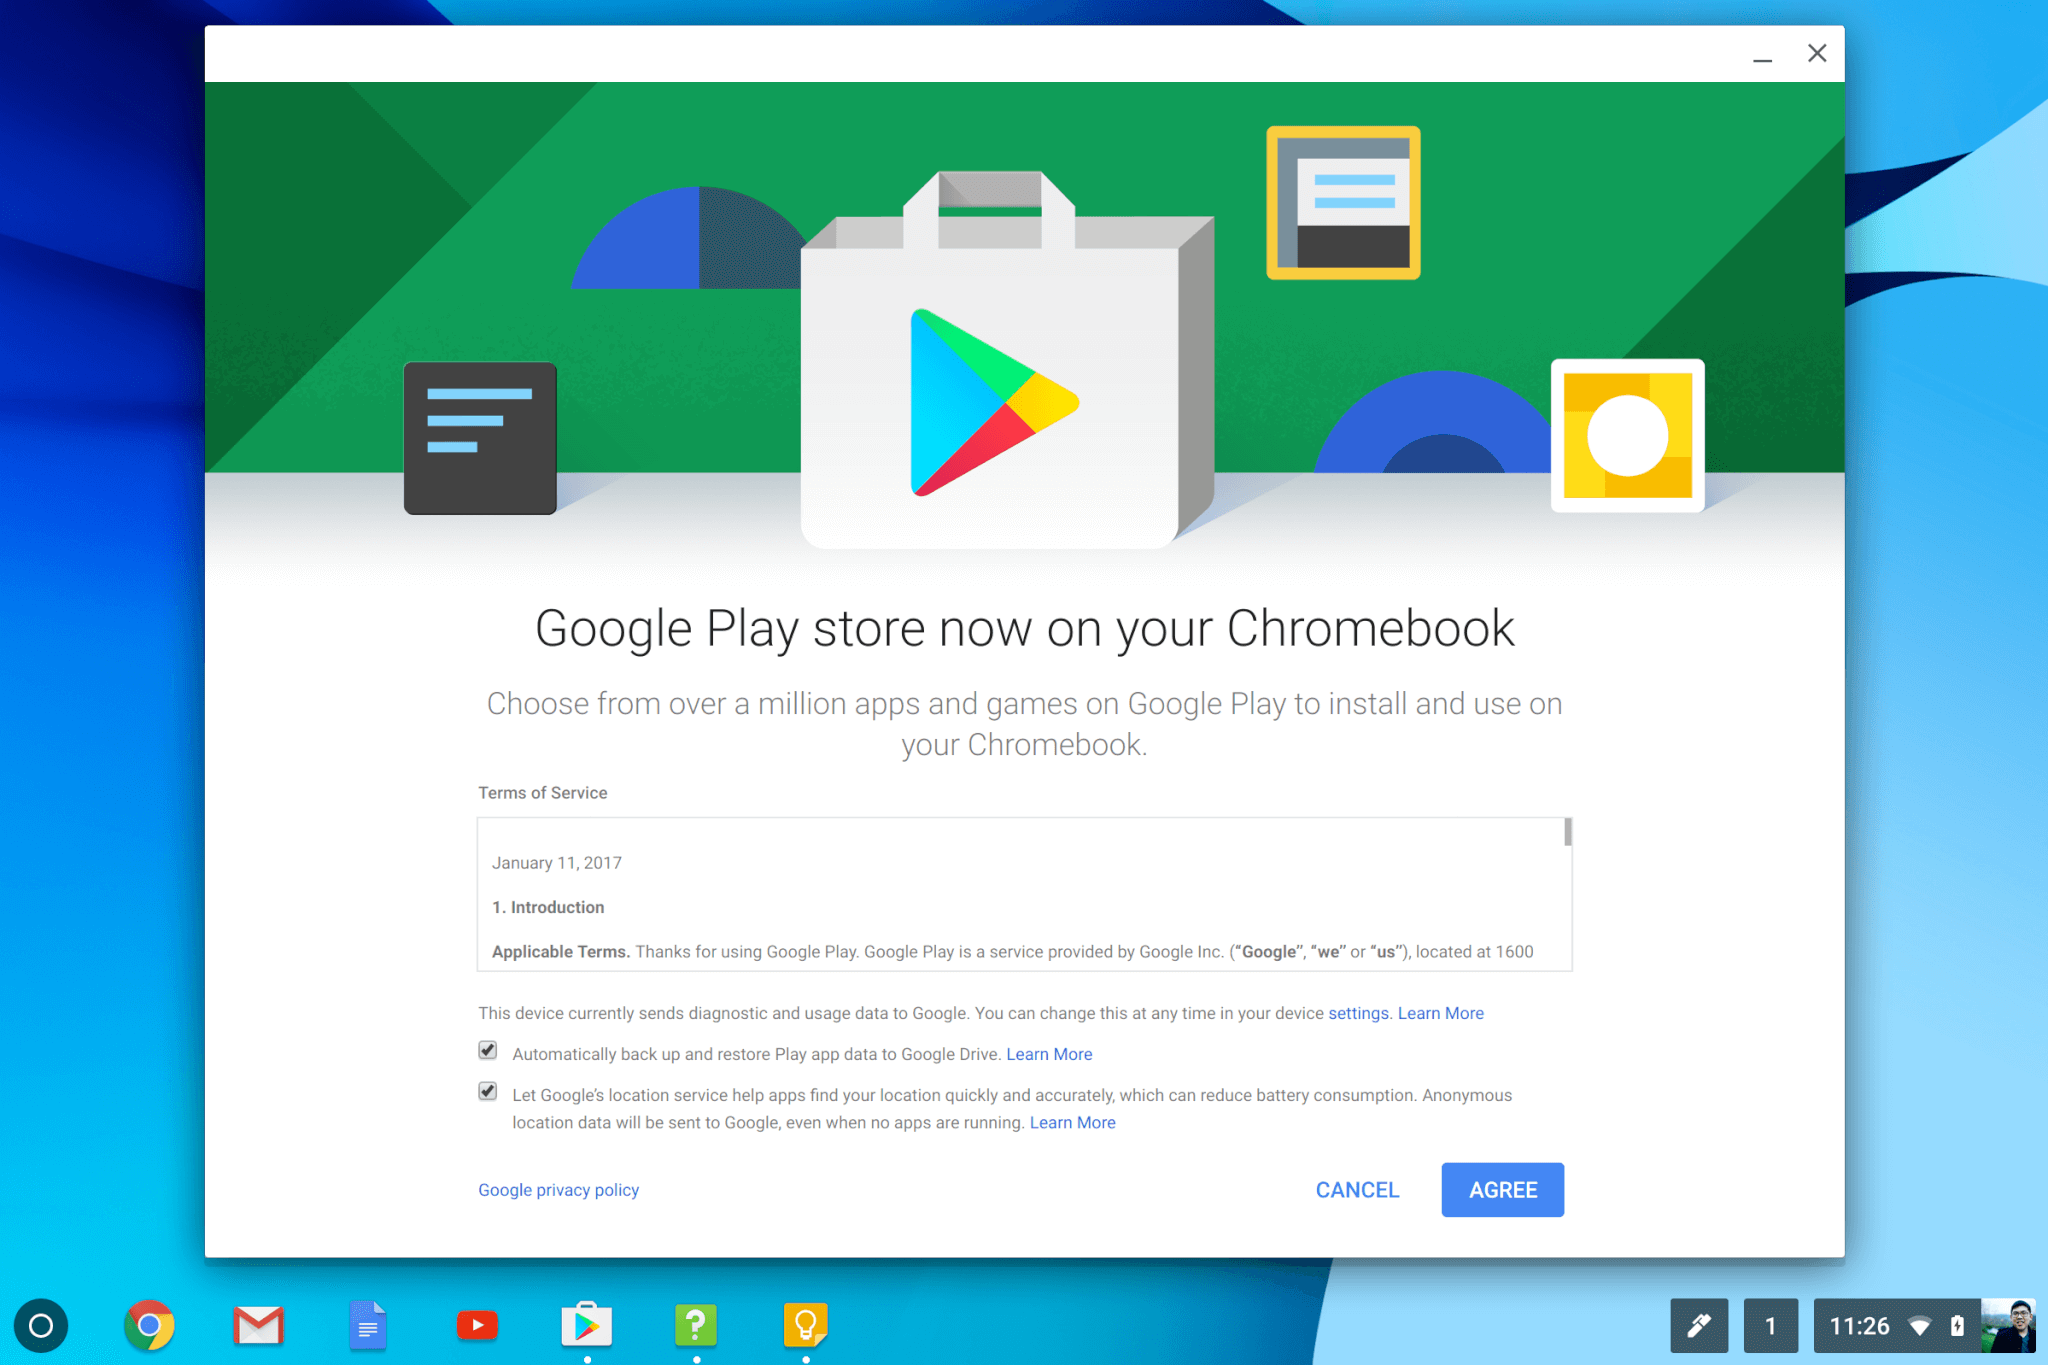 Onboarding screen when you first use the Google Play store on the Samsung Chromebook Pro.